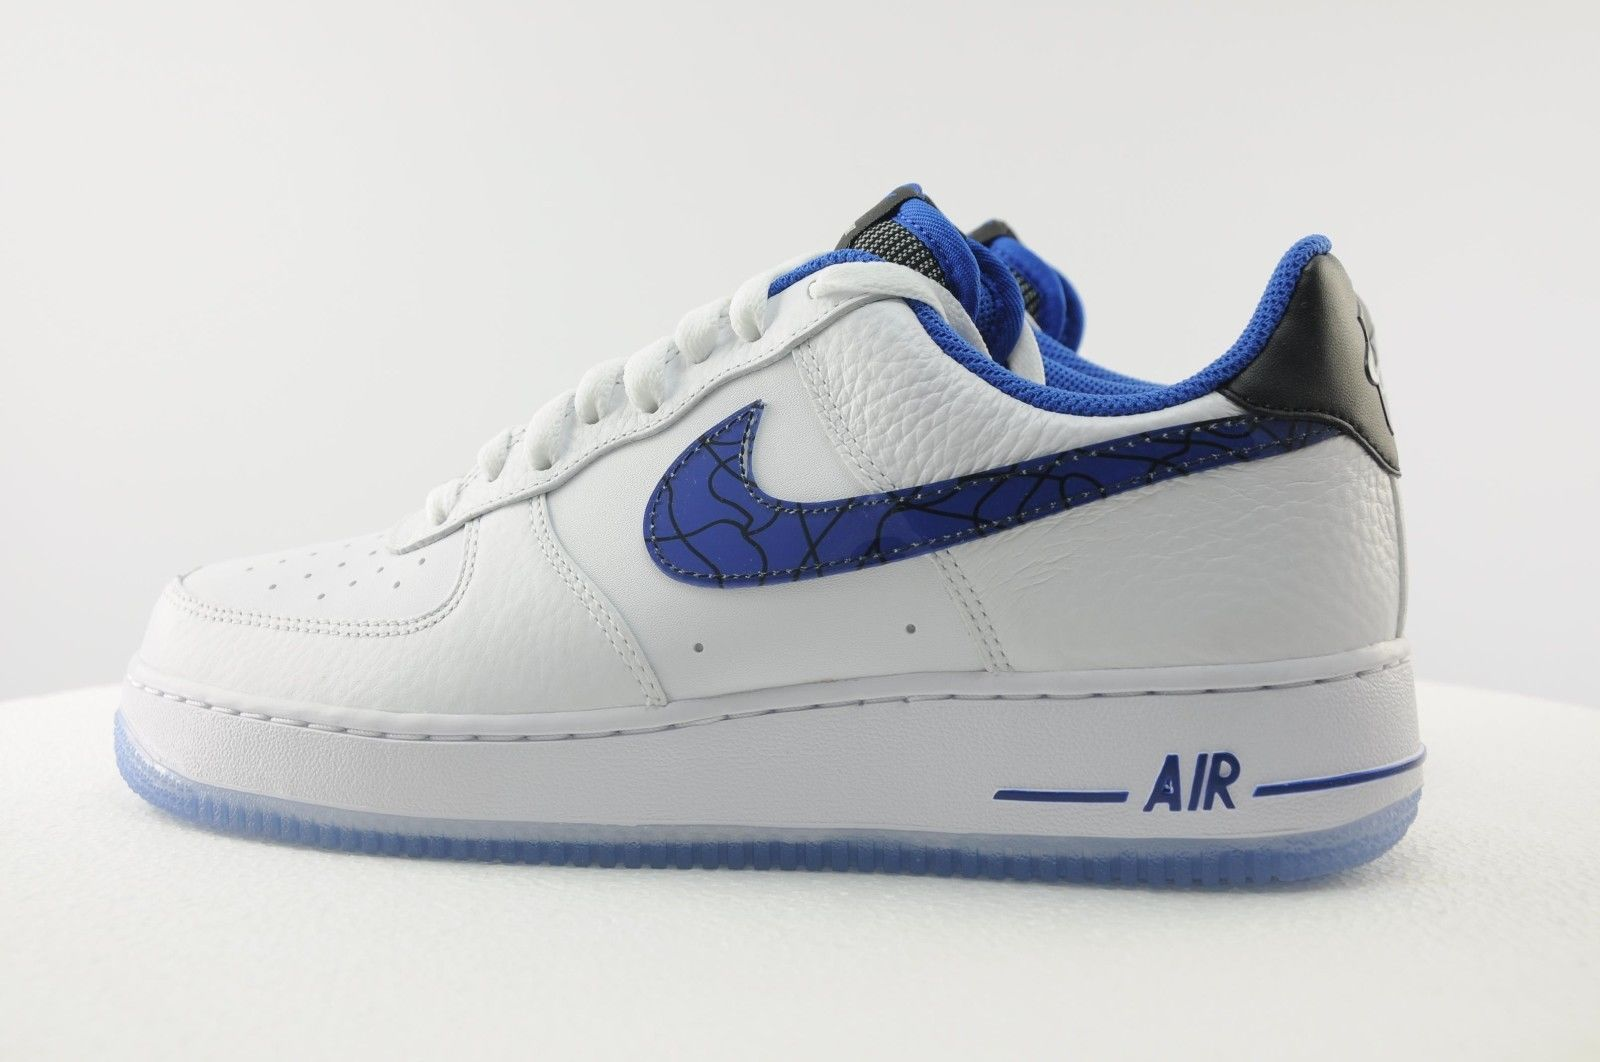 86f2e48304 Nike Air Force 1 Low '07 - Penny Hardaway | Sole Collector